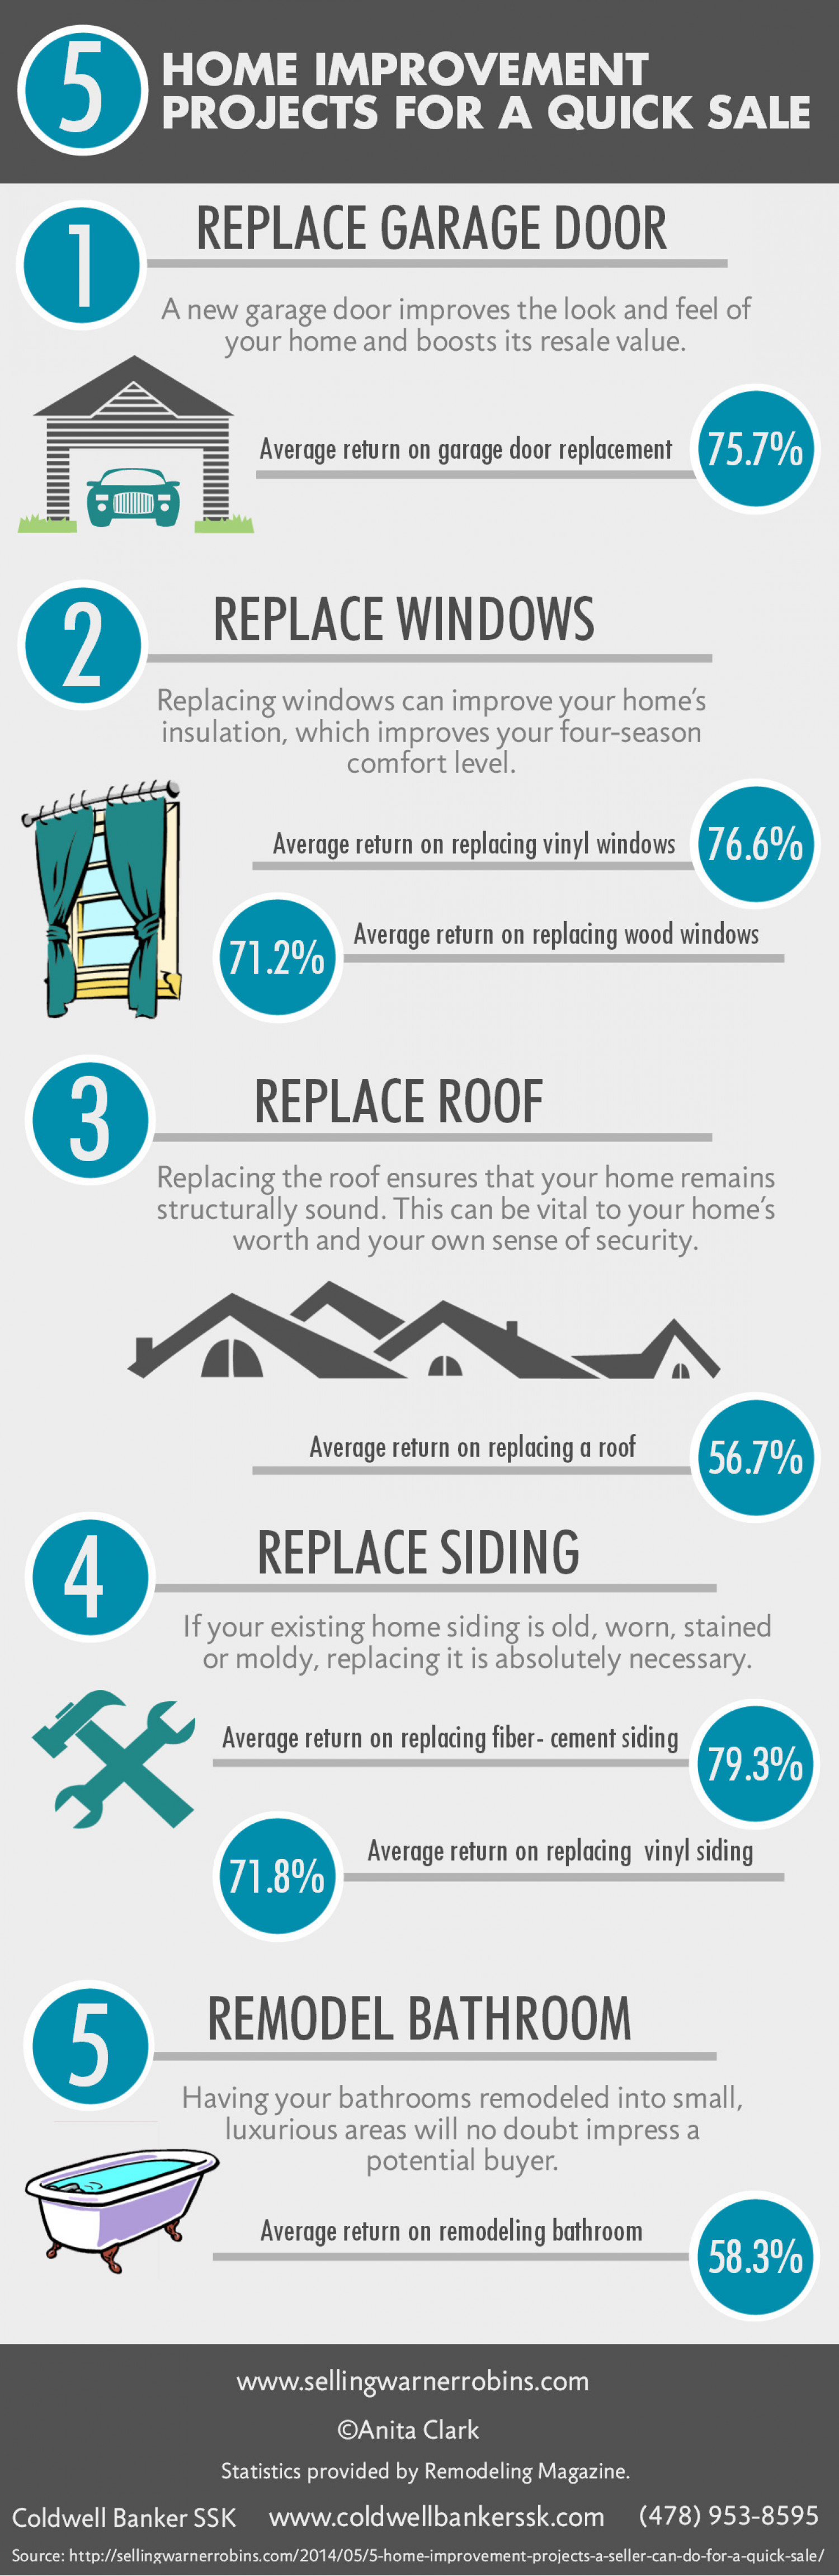 5 Home Improvement Projects for a Quick Sale Infographic